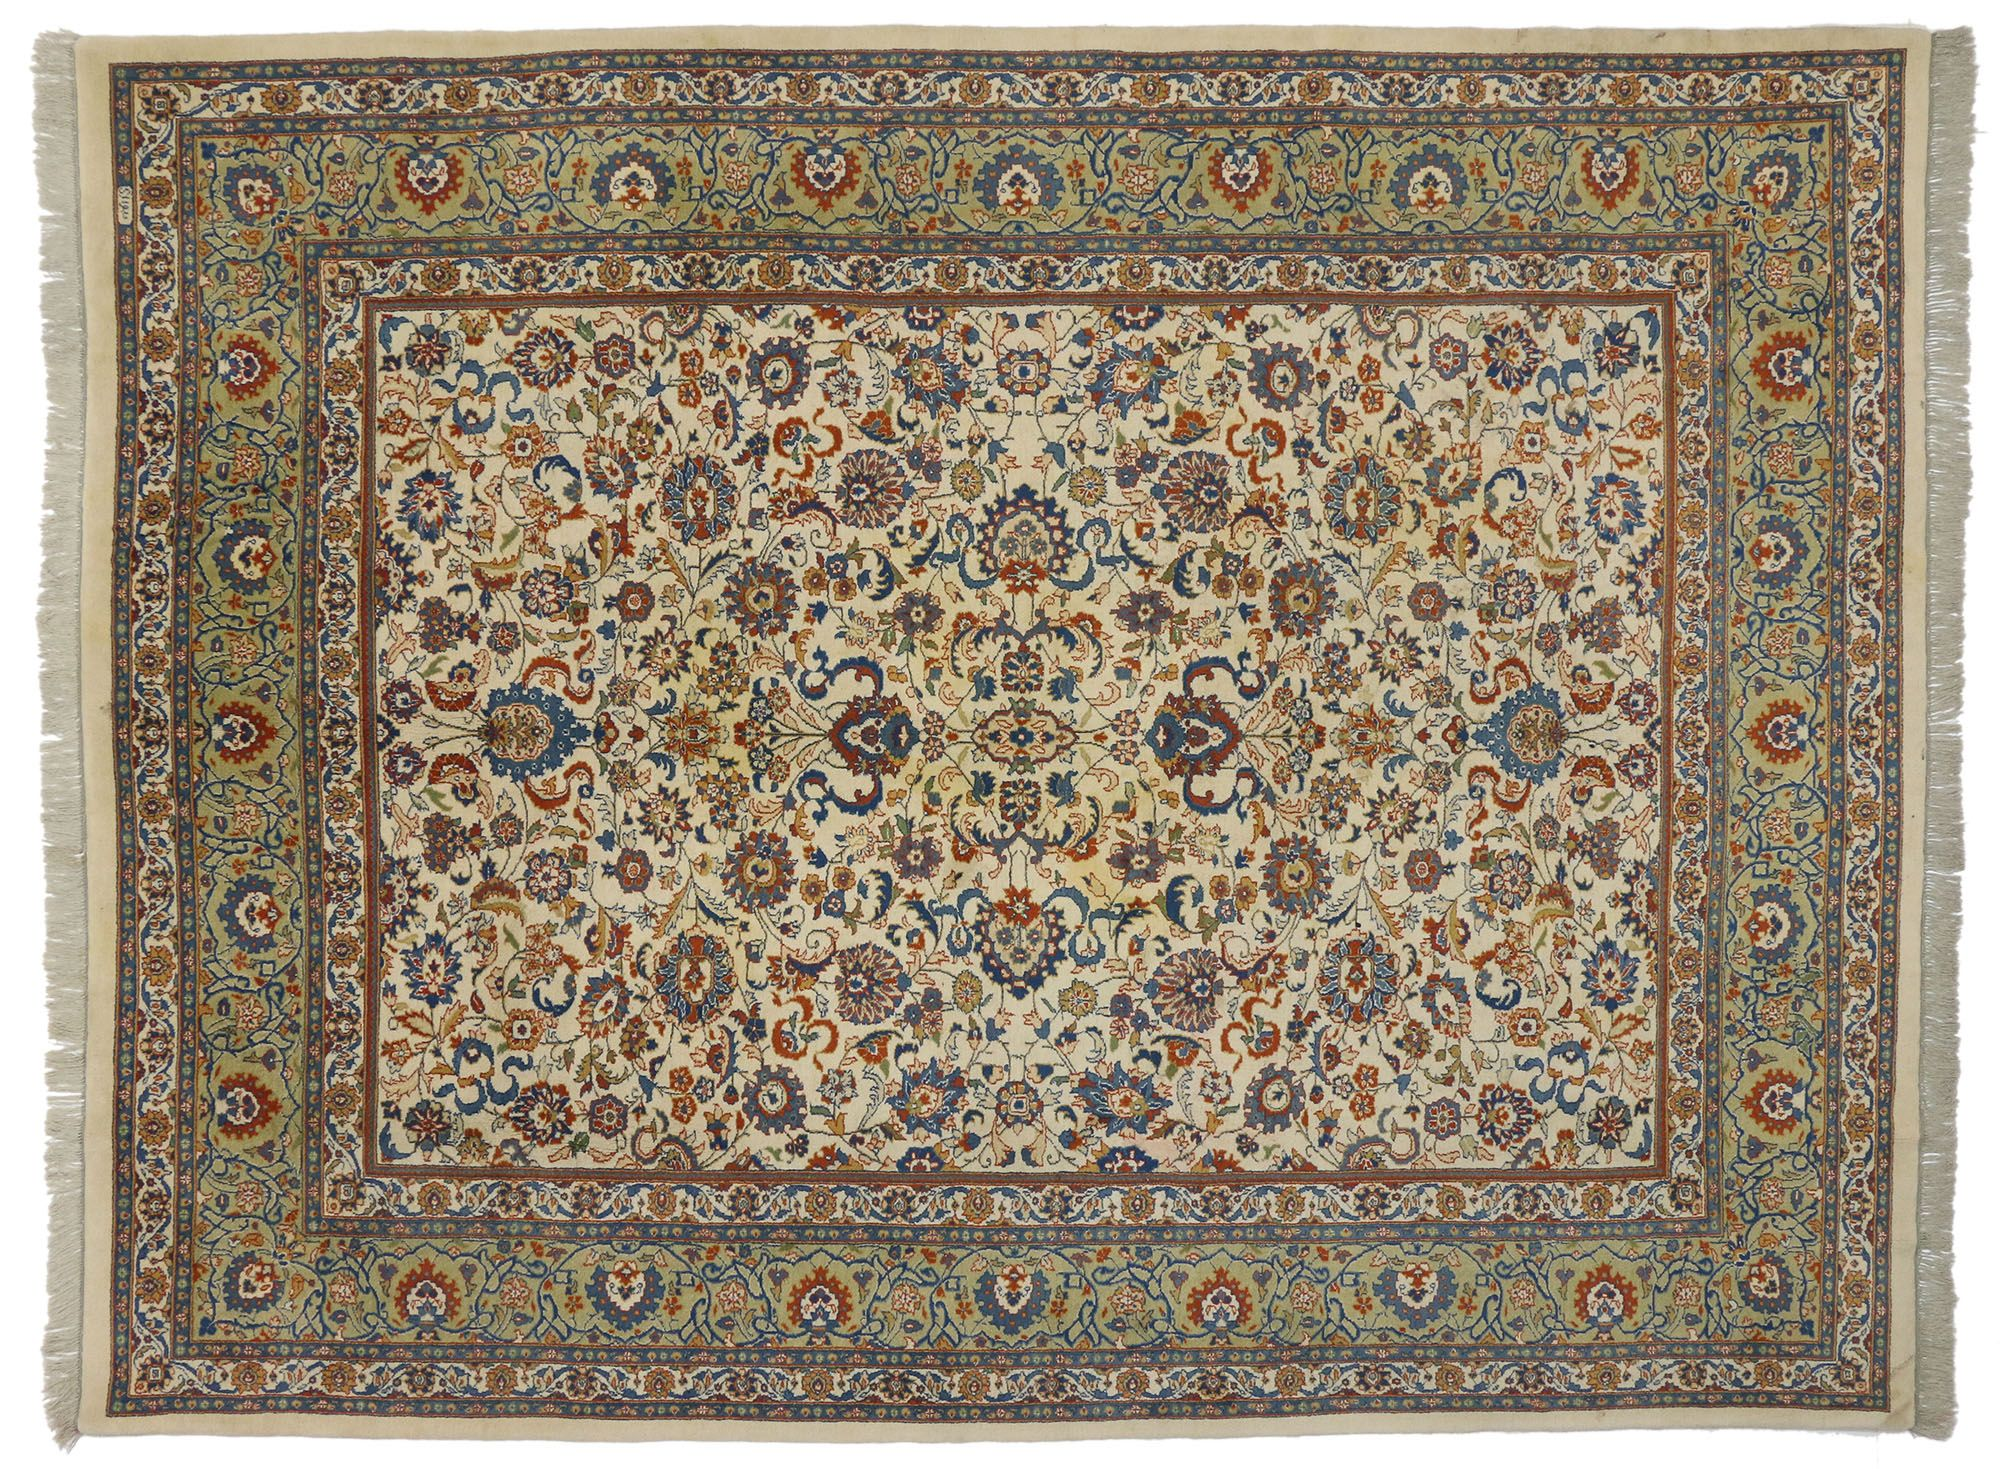 Vintage Indian Oriental Rug 9 X 12 Indian Rugs Vintage Persian Rug Persian Style Rug Home inspired by india rug